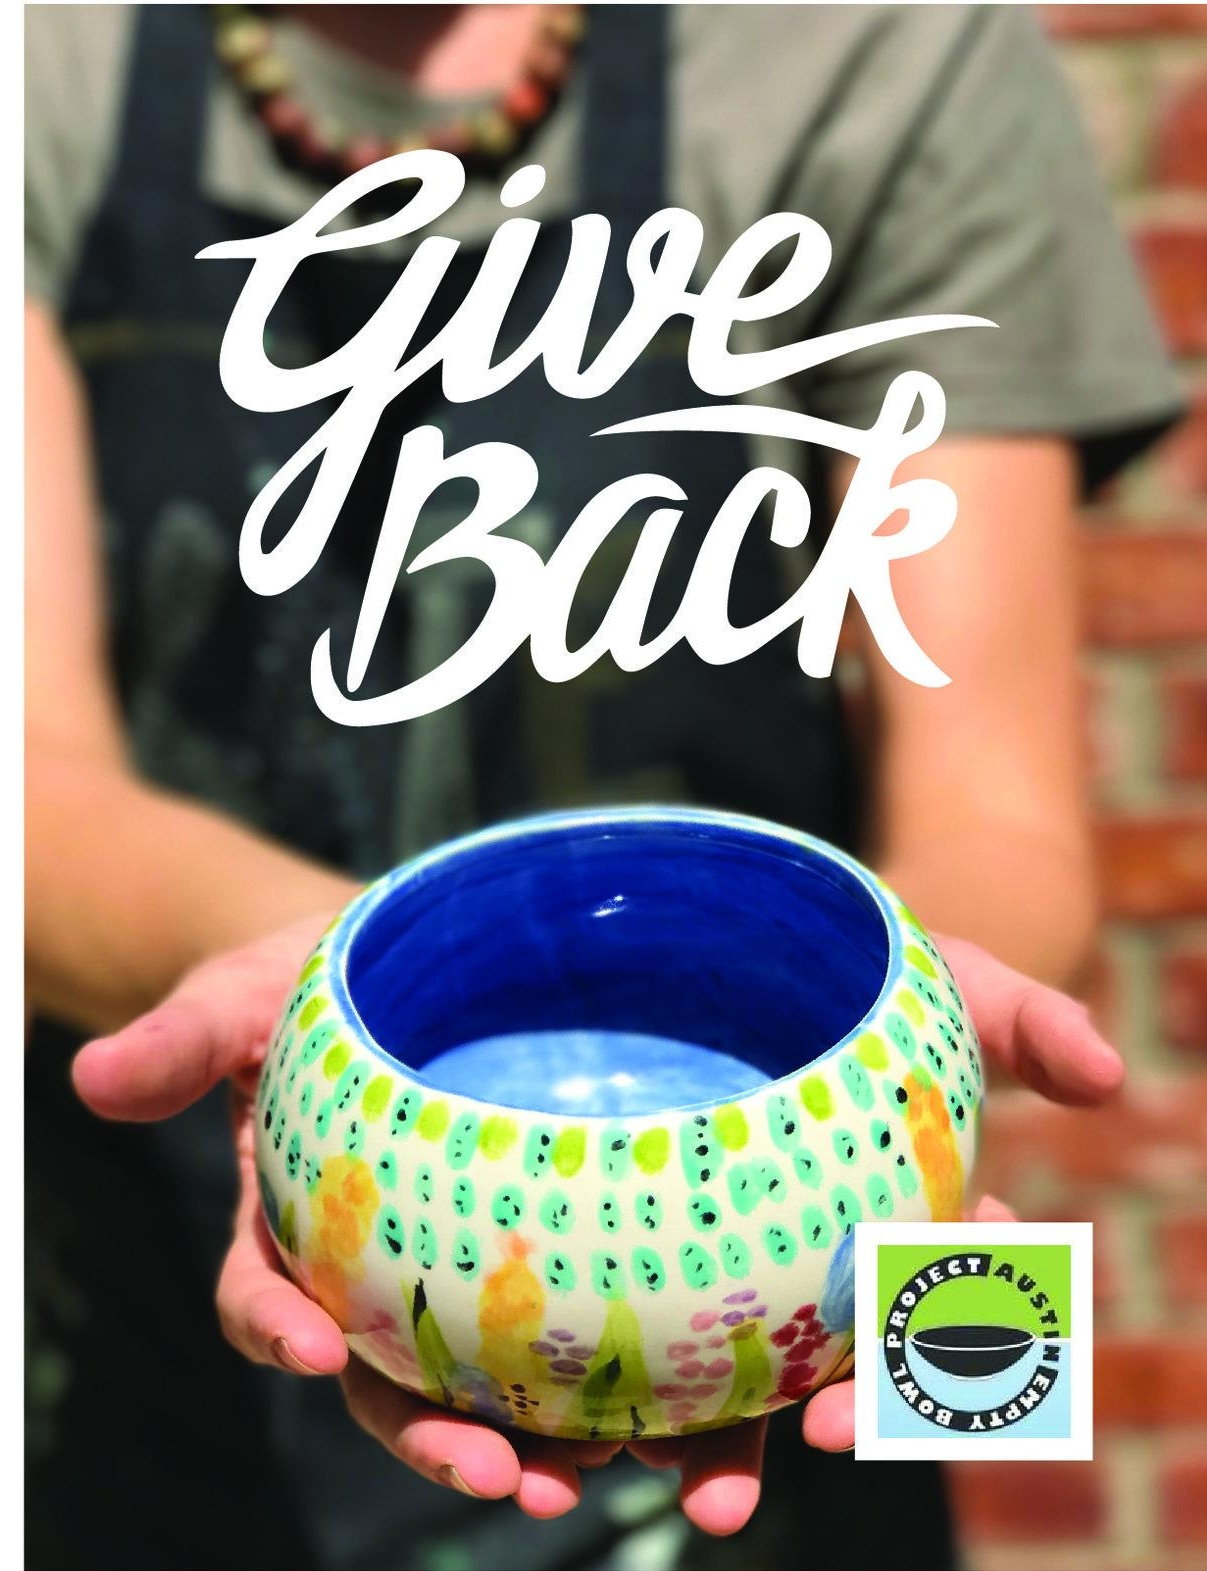 Bring the kids, make it a date night, or grab the gang for a pottery painting party that GIVES BACK.Paint one of our empty bowls for $13+tax to be donated to The Empty Bowl Project. Feed your soul and help feed our neighbors. Together is better. -